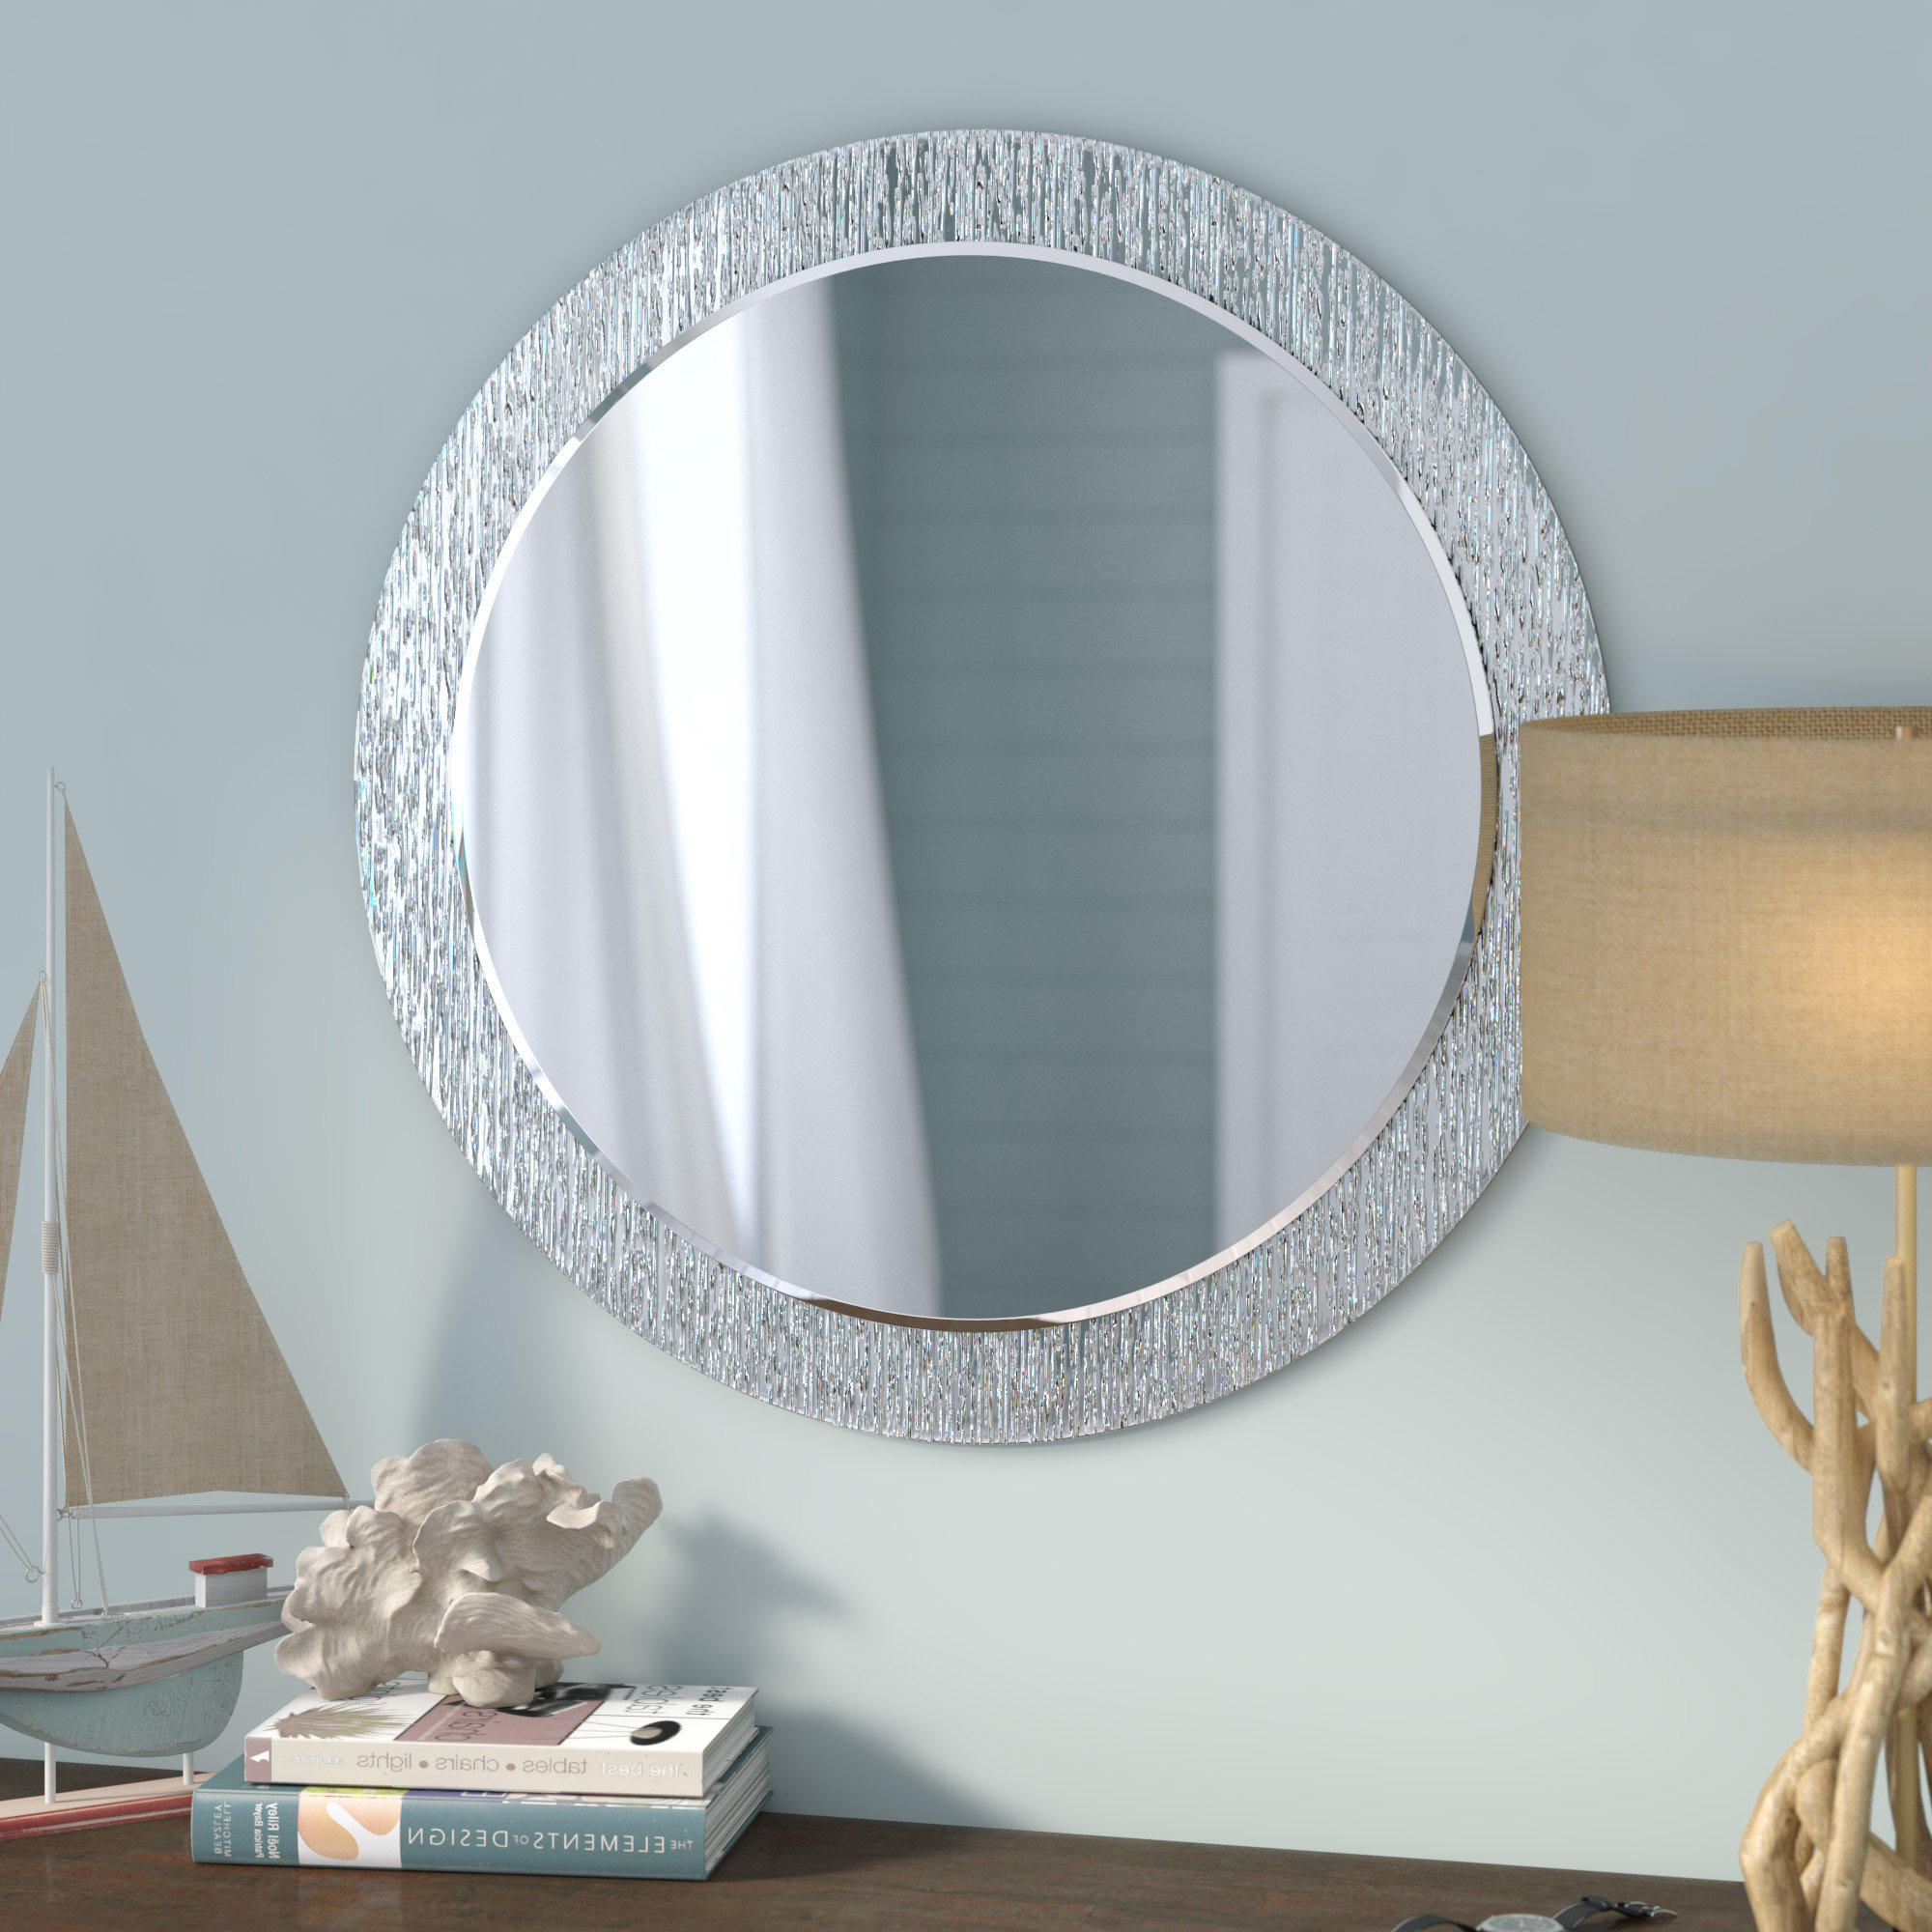 Most Recent Point Reyes Molten Round Wall Mirror Intended For Round Wood Wall Mirrors (View 11 of 20)